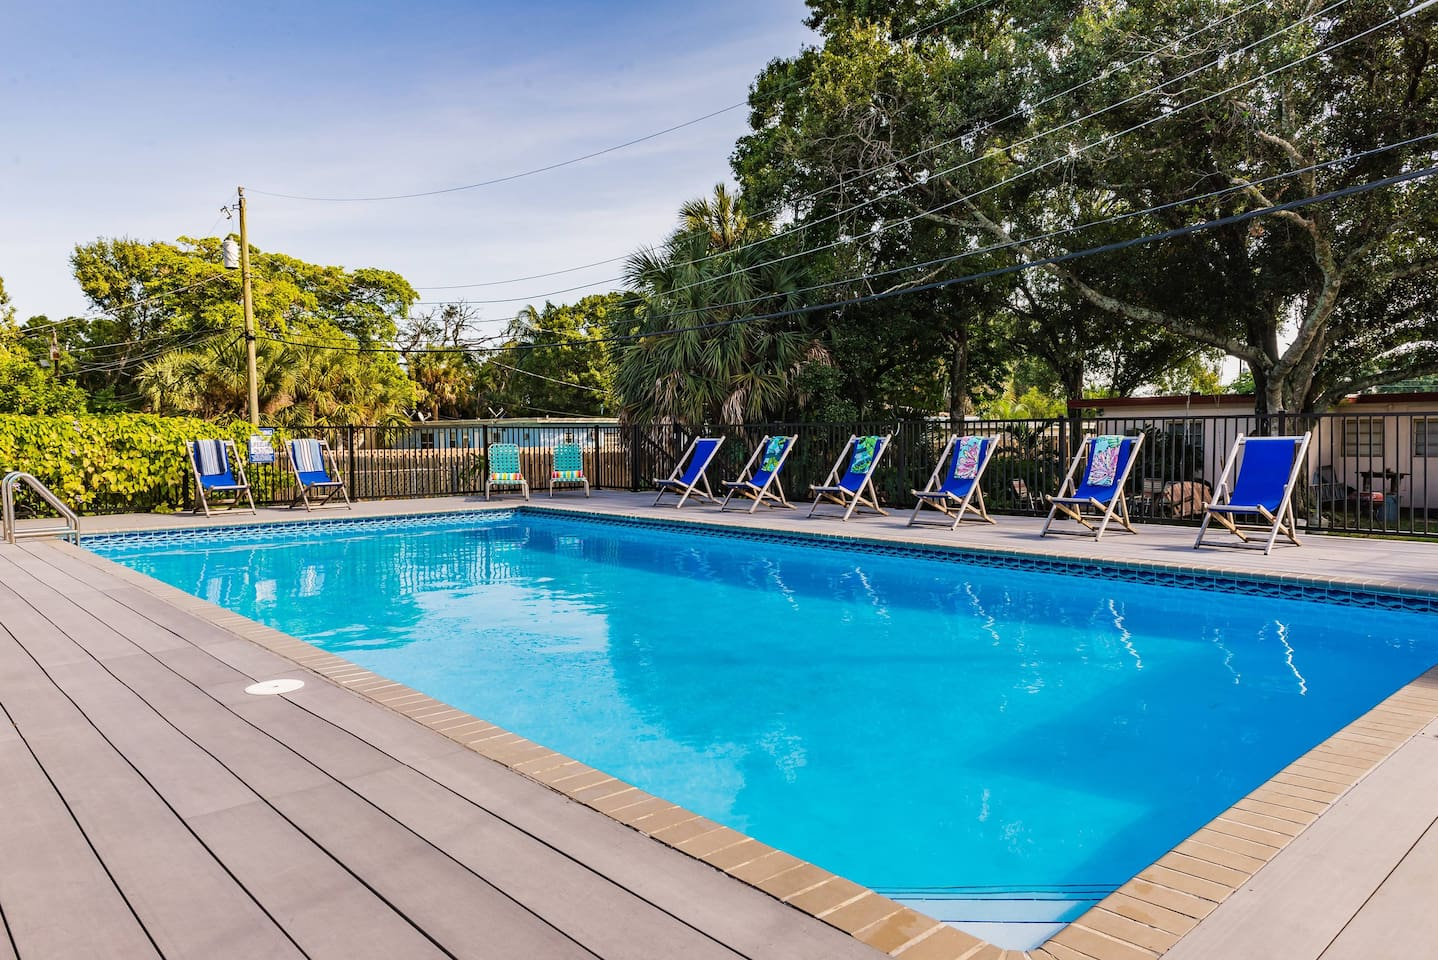 Relax in the salt water pool.  It has no chlorine and is very good for the skin.  Very large at 20x40 feet (6 x 12m).  Depth ranges from 3.5 to 7 feet (1.1 to 2.15m).  Shared by eight units around a common back yard.